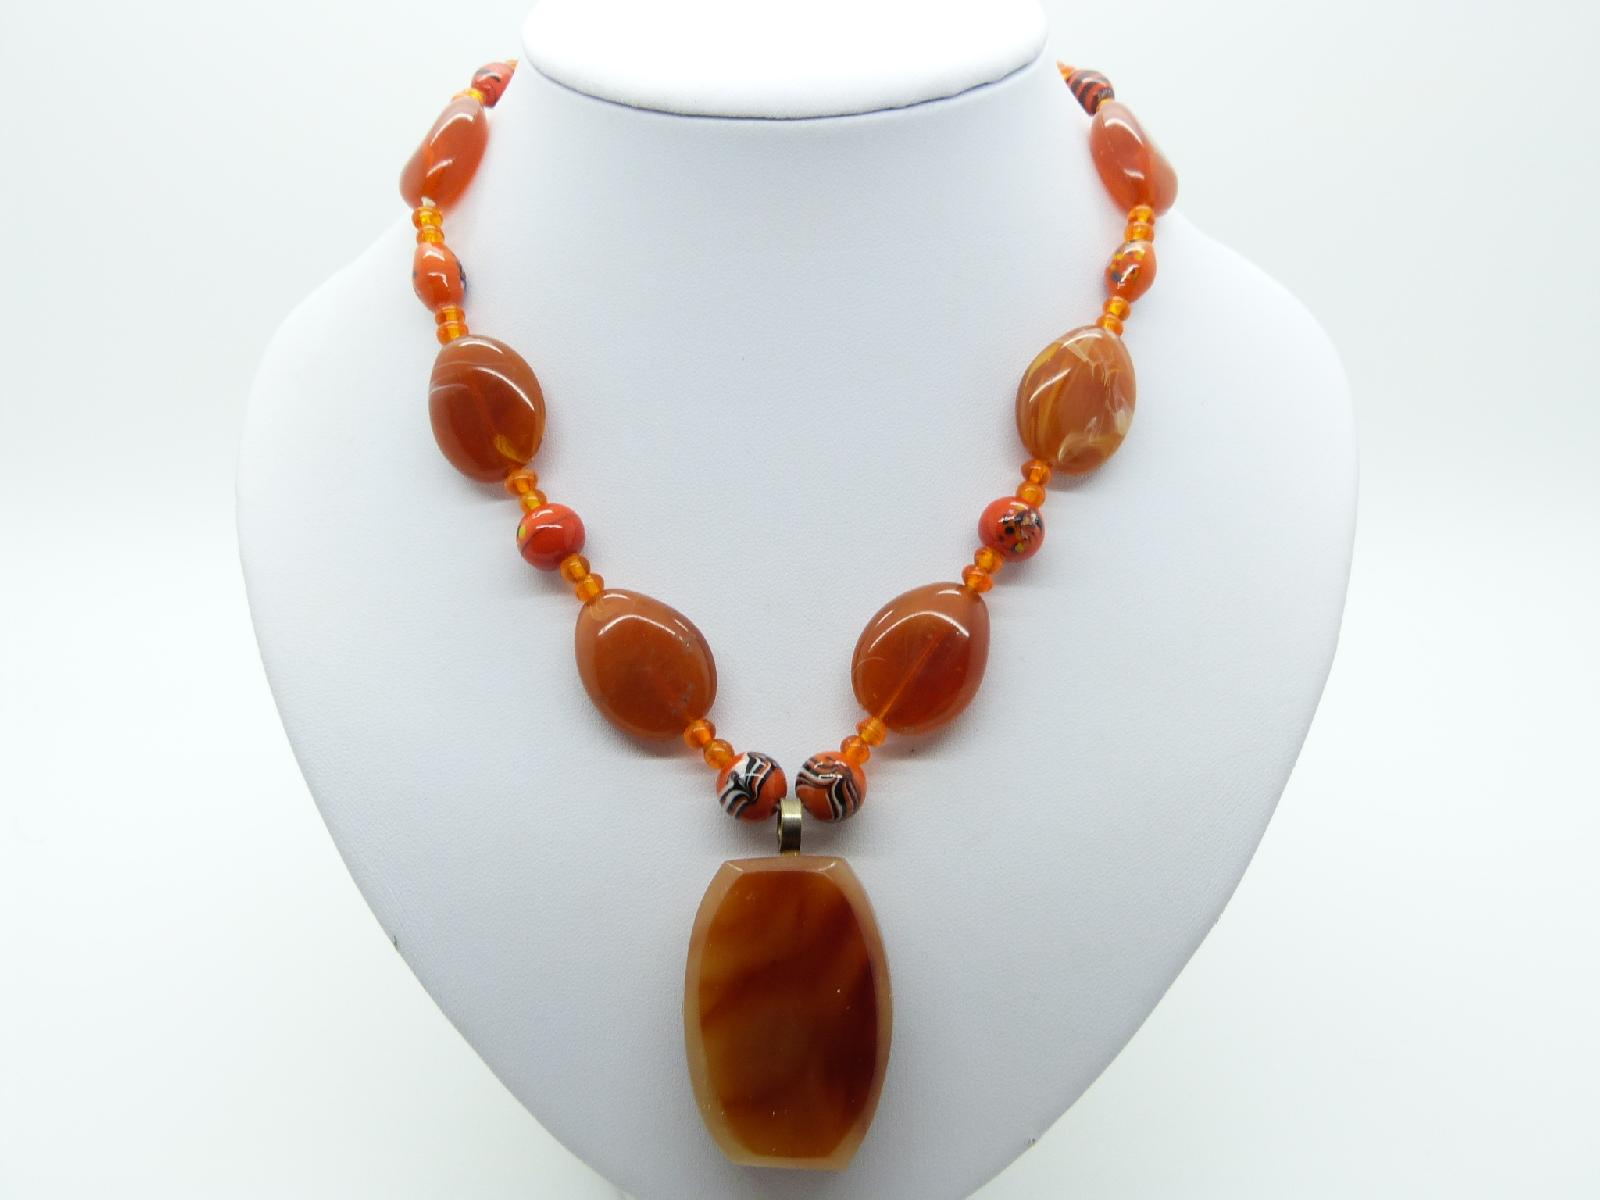 £24.00 - Vintage 70s Orange Murano Glsss and Amber Lucite Bead Pendant Necklace